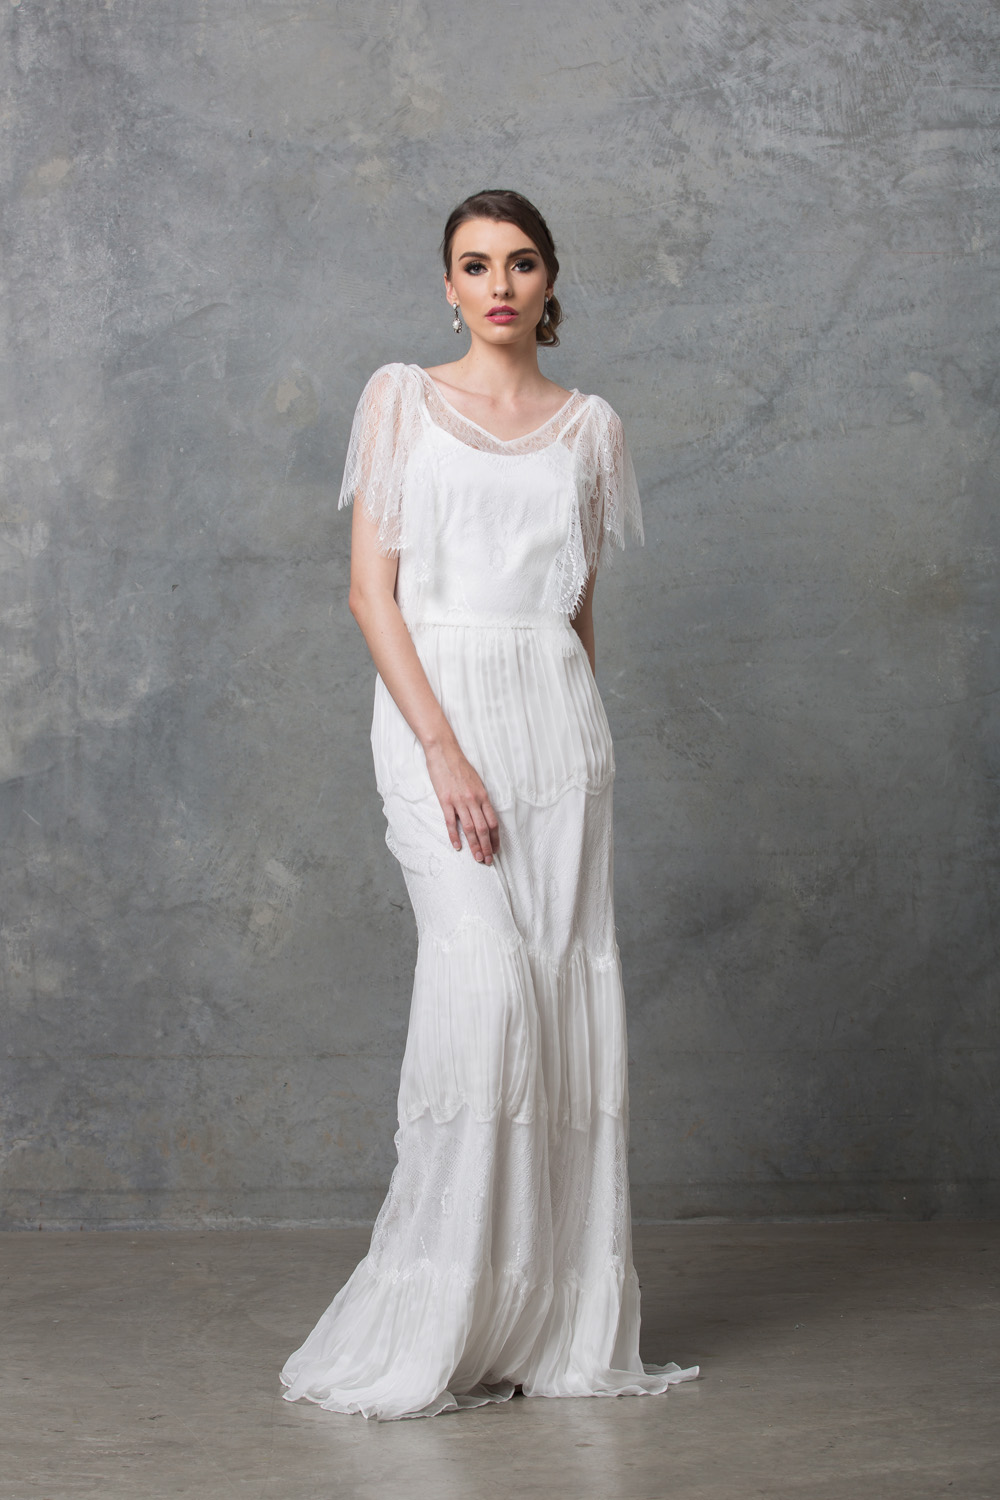 clara-boho-wedding-dess-to58-v-white